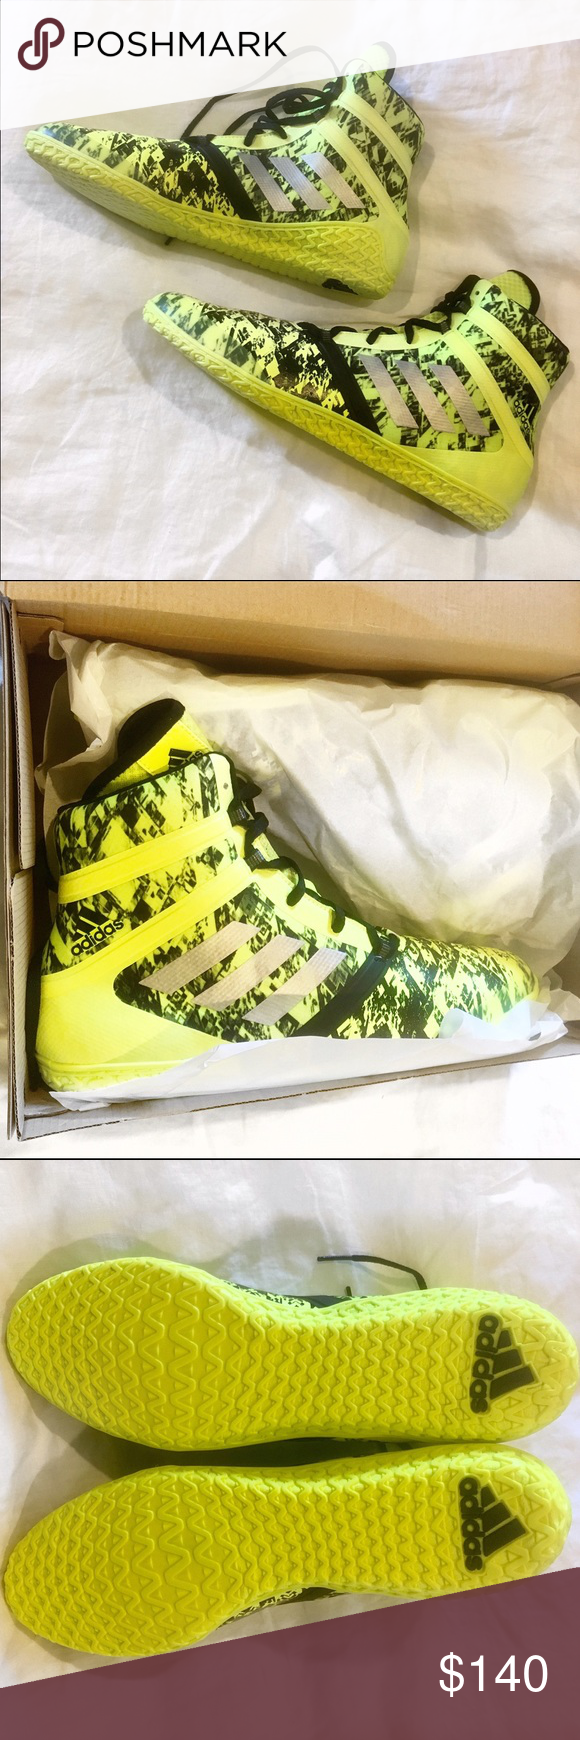 new style 75a31 03455 Adidas Flying Impact boxing shoes Adidas impact boxing shoes 13 solar  yellowblack. Size 13, in boxing shoes you need to size up so I recommend  being a ...